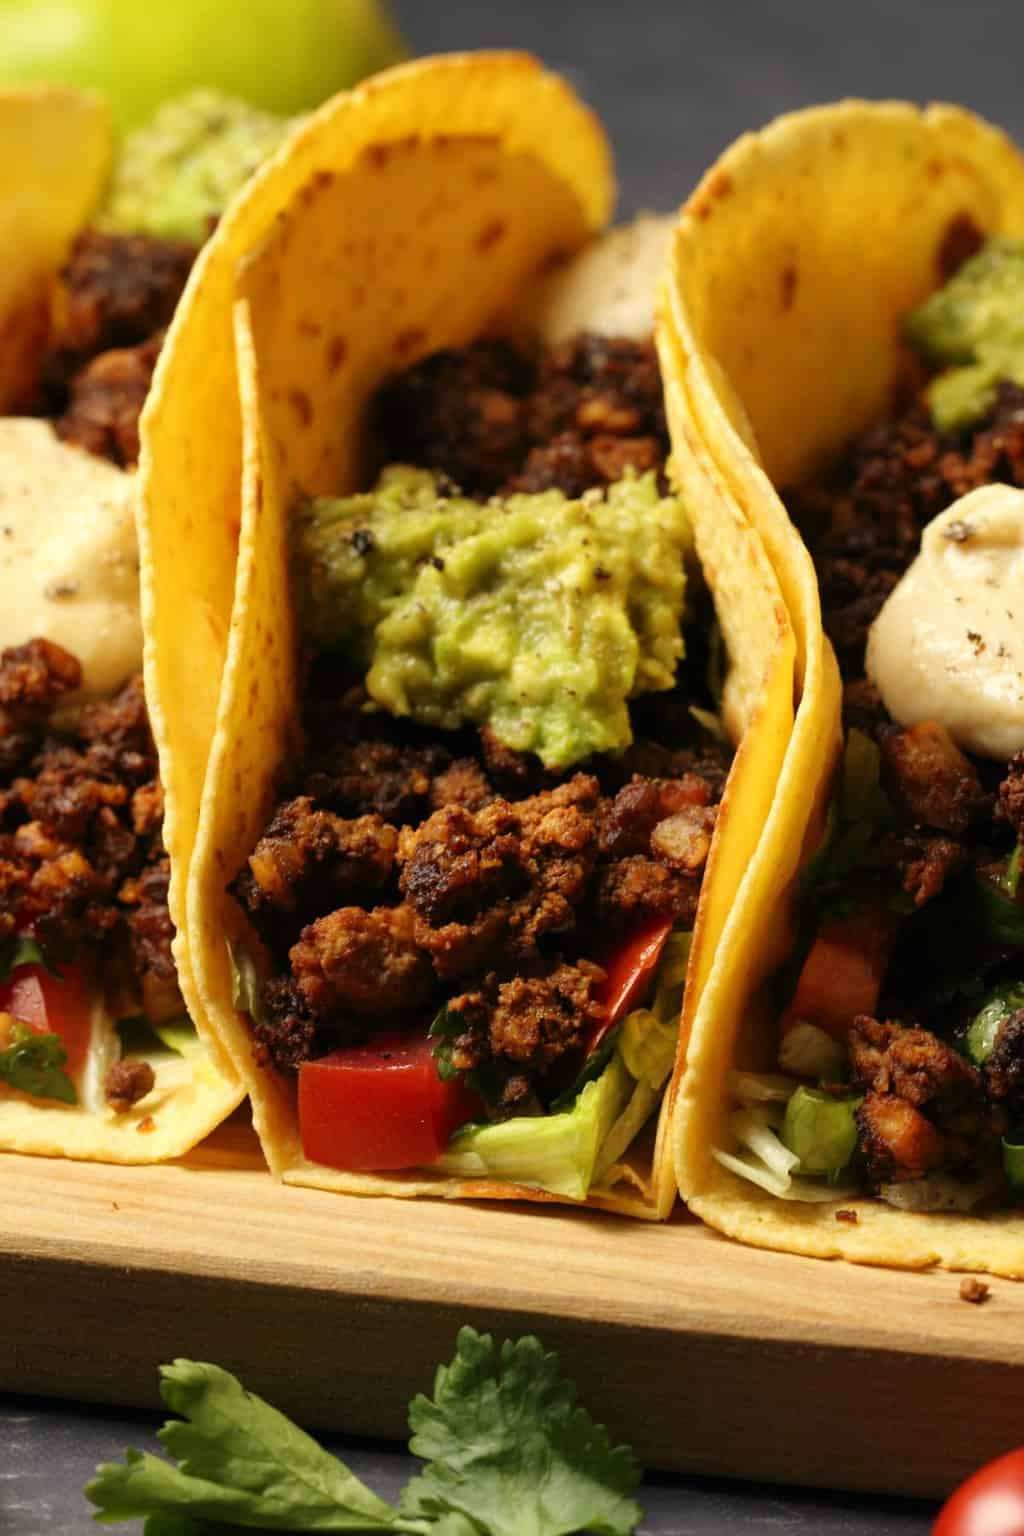 Vegan taco meat in tacos with lettuce, salsa, guacamole and vegan sour cream, on a wooden board.